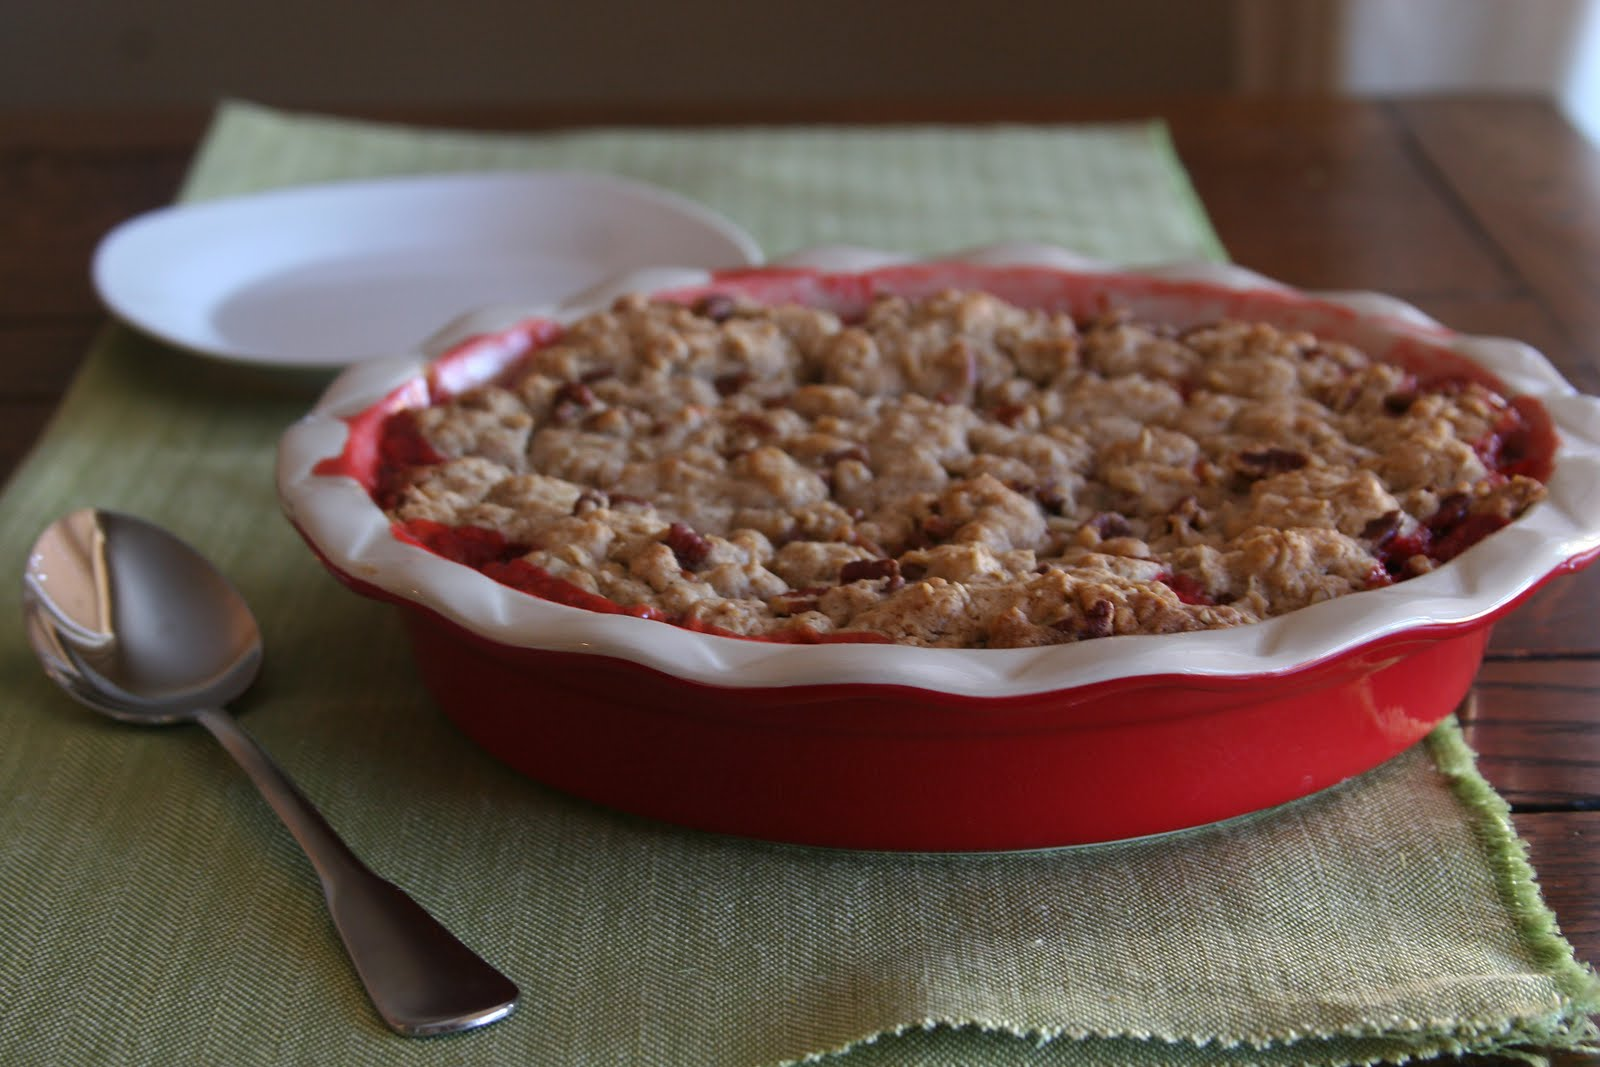 Strawberry Rhubarb Cobbler With Cake Mix